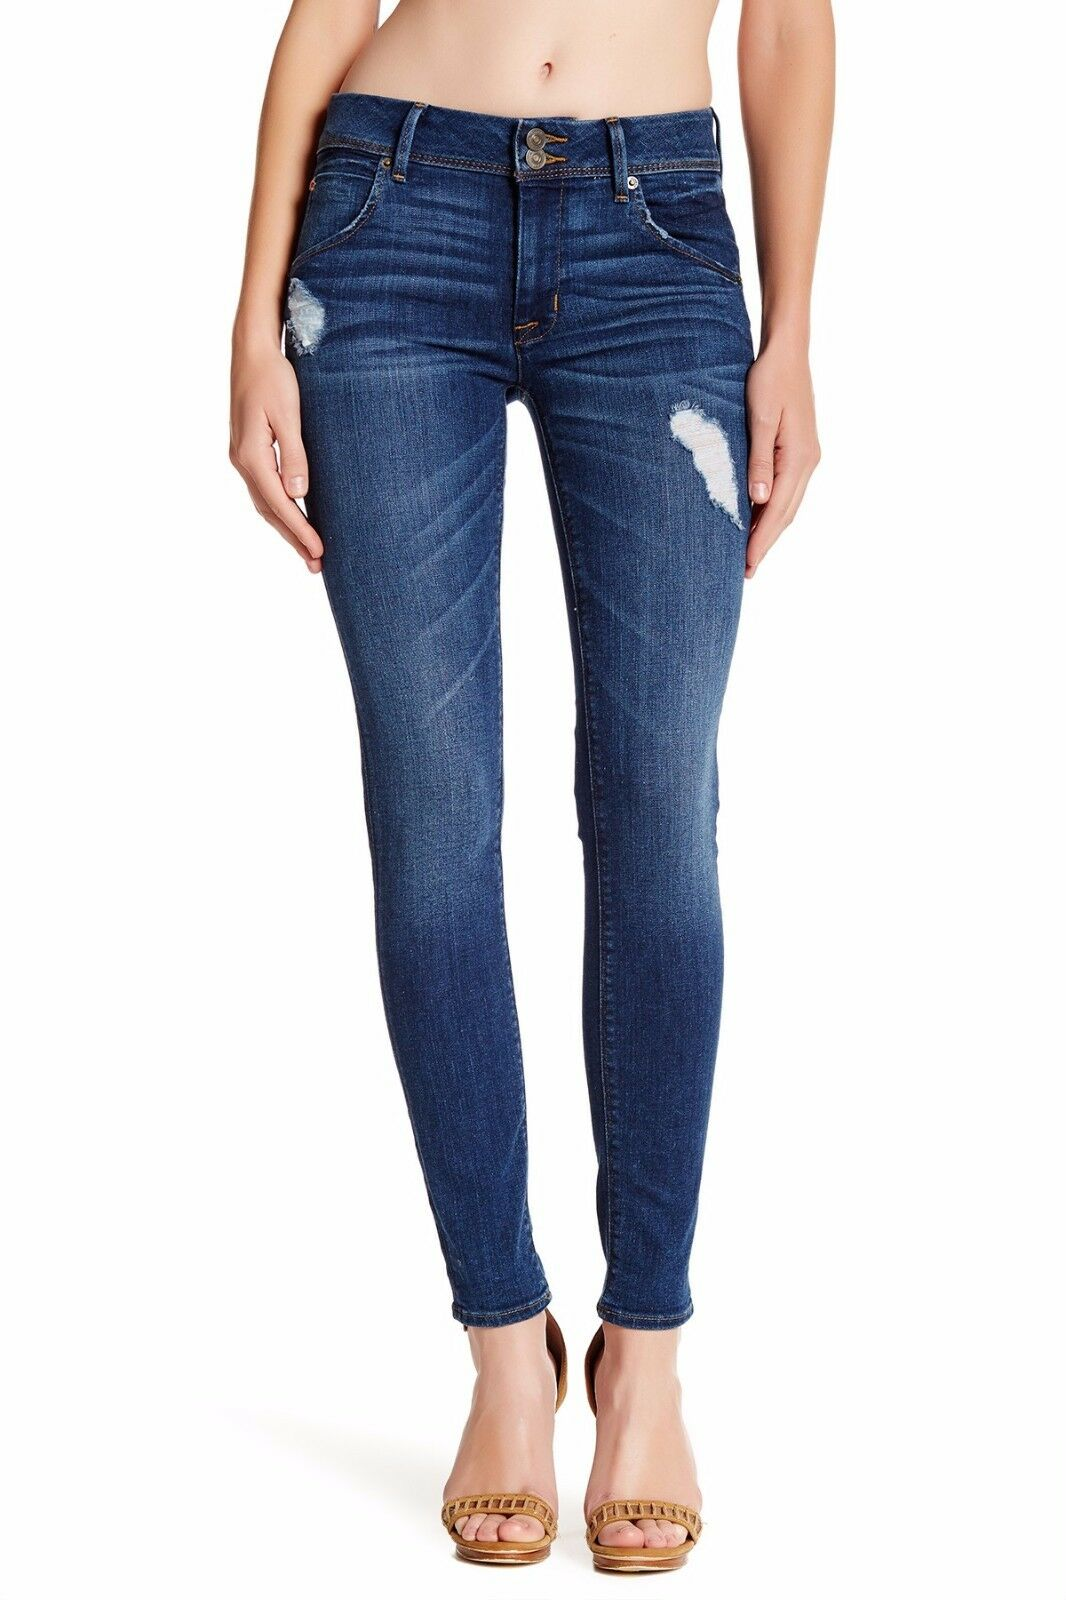 HUDSON Jeans  189 Collin Ankle Jean - Dharma - Size 27